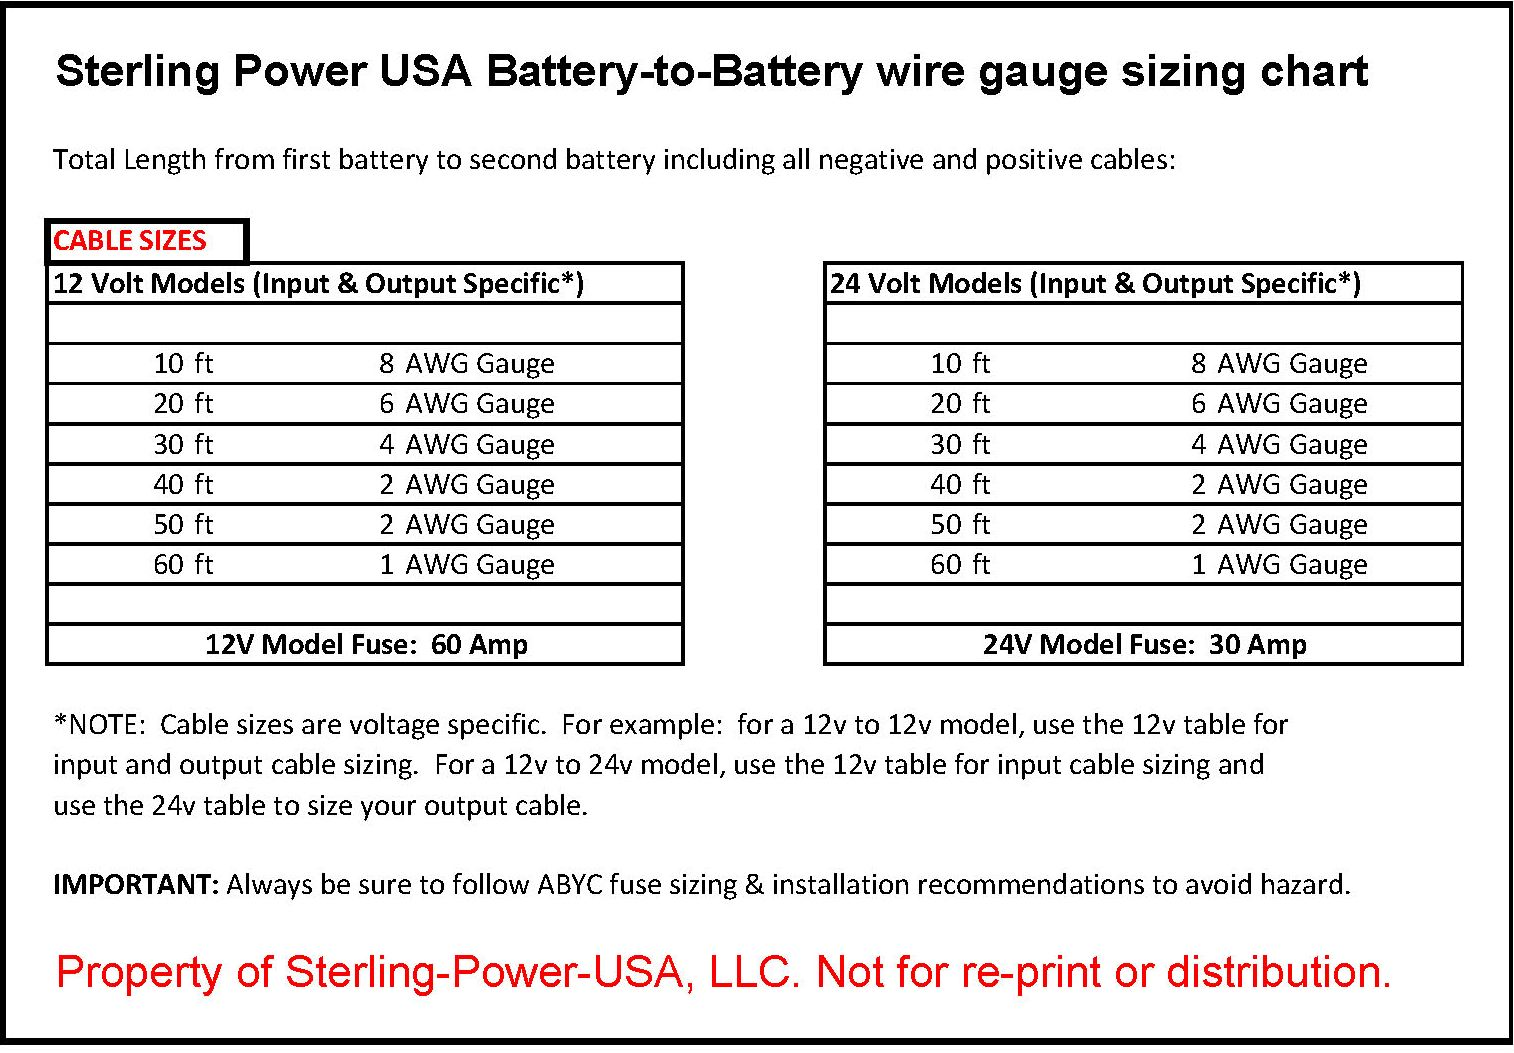 hight resolution of http www sterling power usa com library battery to battery wire gauge chart jpg